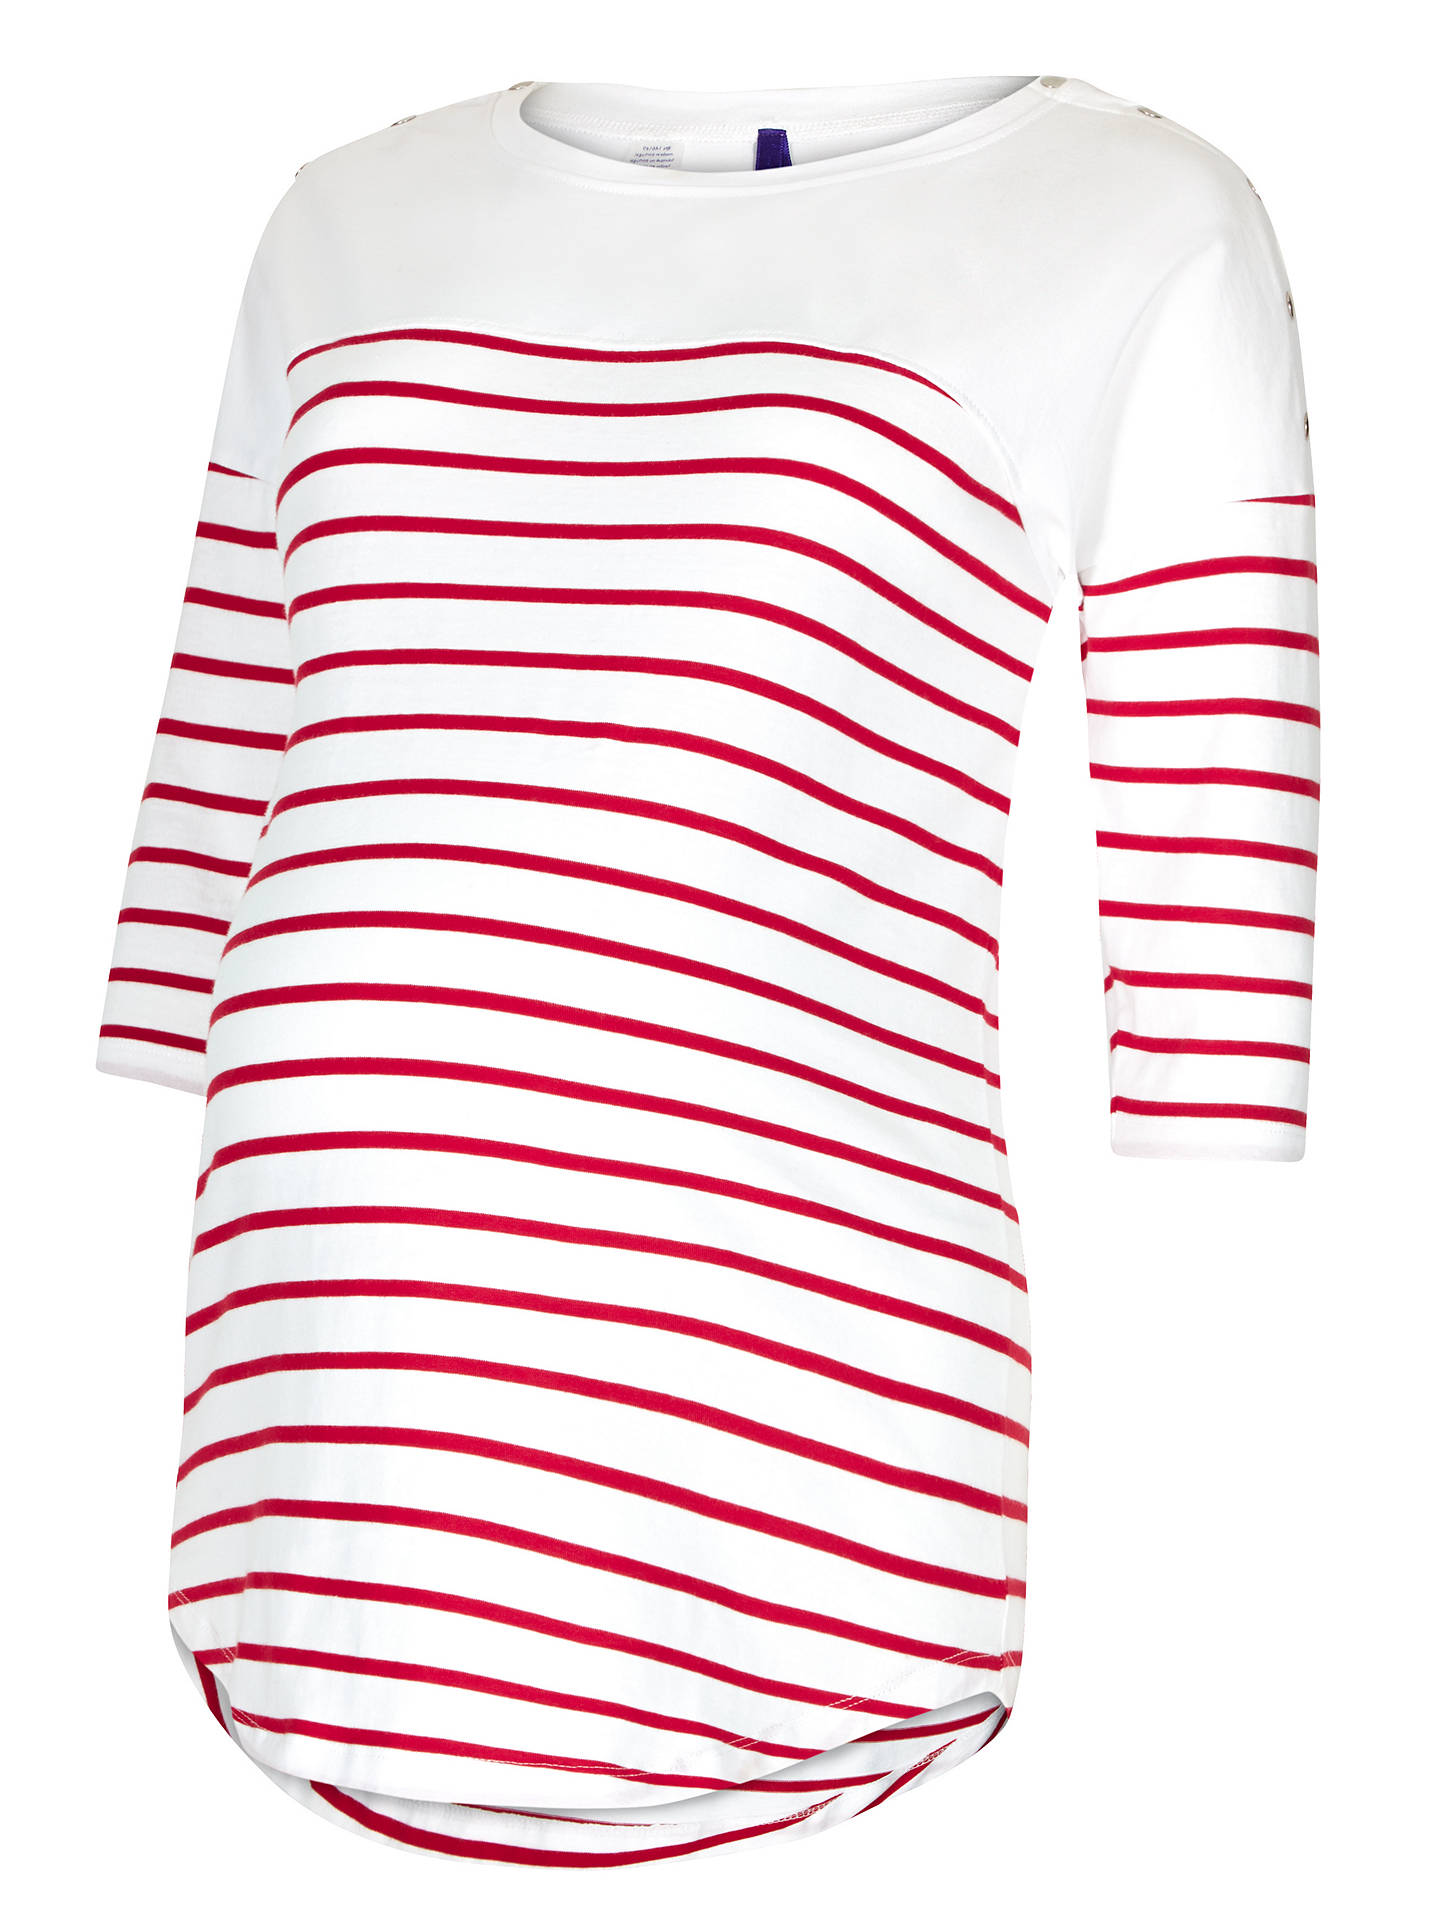 Buy Séraphine Jillian Stripe Maternity Nursing Top, Red/White, 8 Online at johnlewis.com